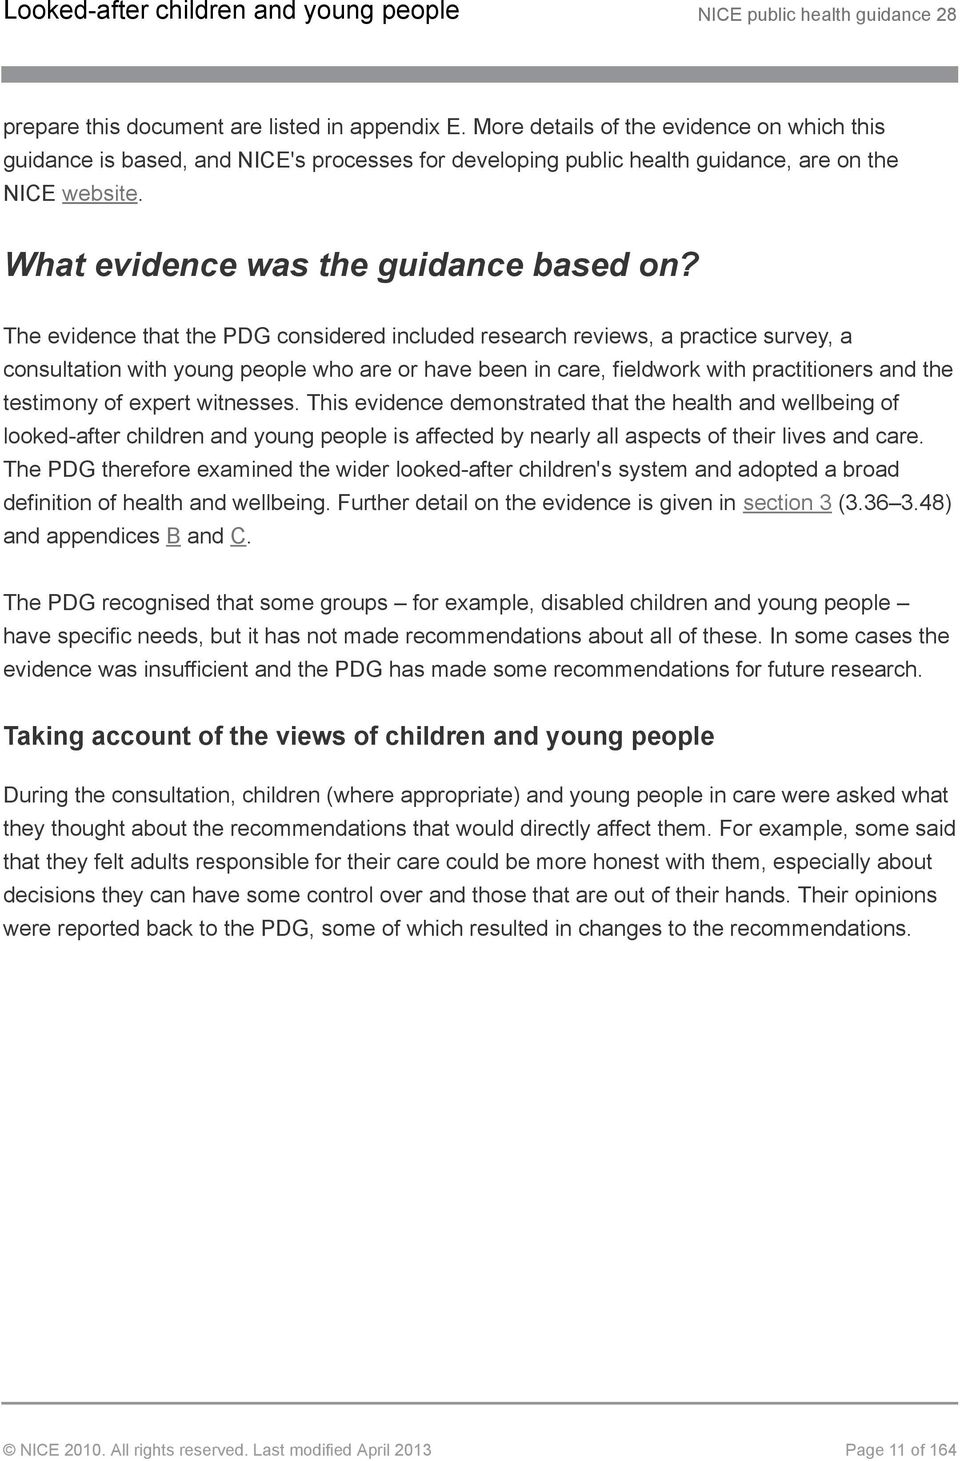 The evidence that the PDG considered included research reviews, a practice survey, a consultation with young people who are or have been in care, fieldwork with practitioners and the testimony of